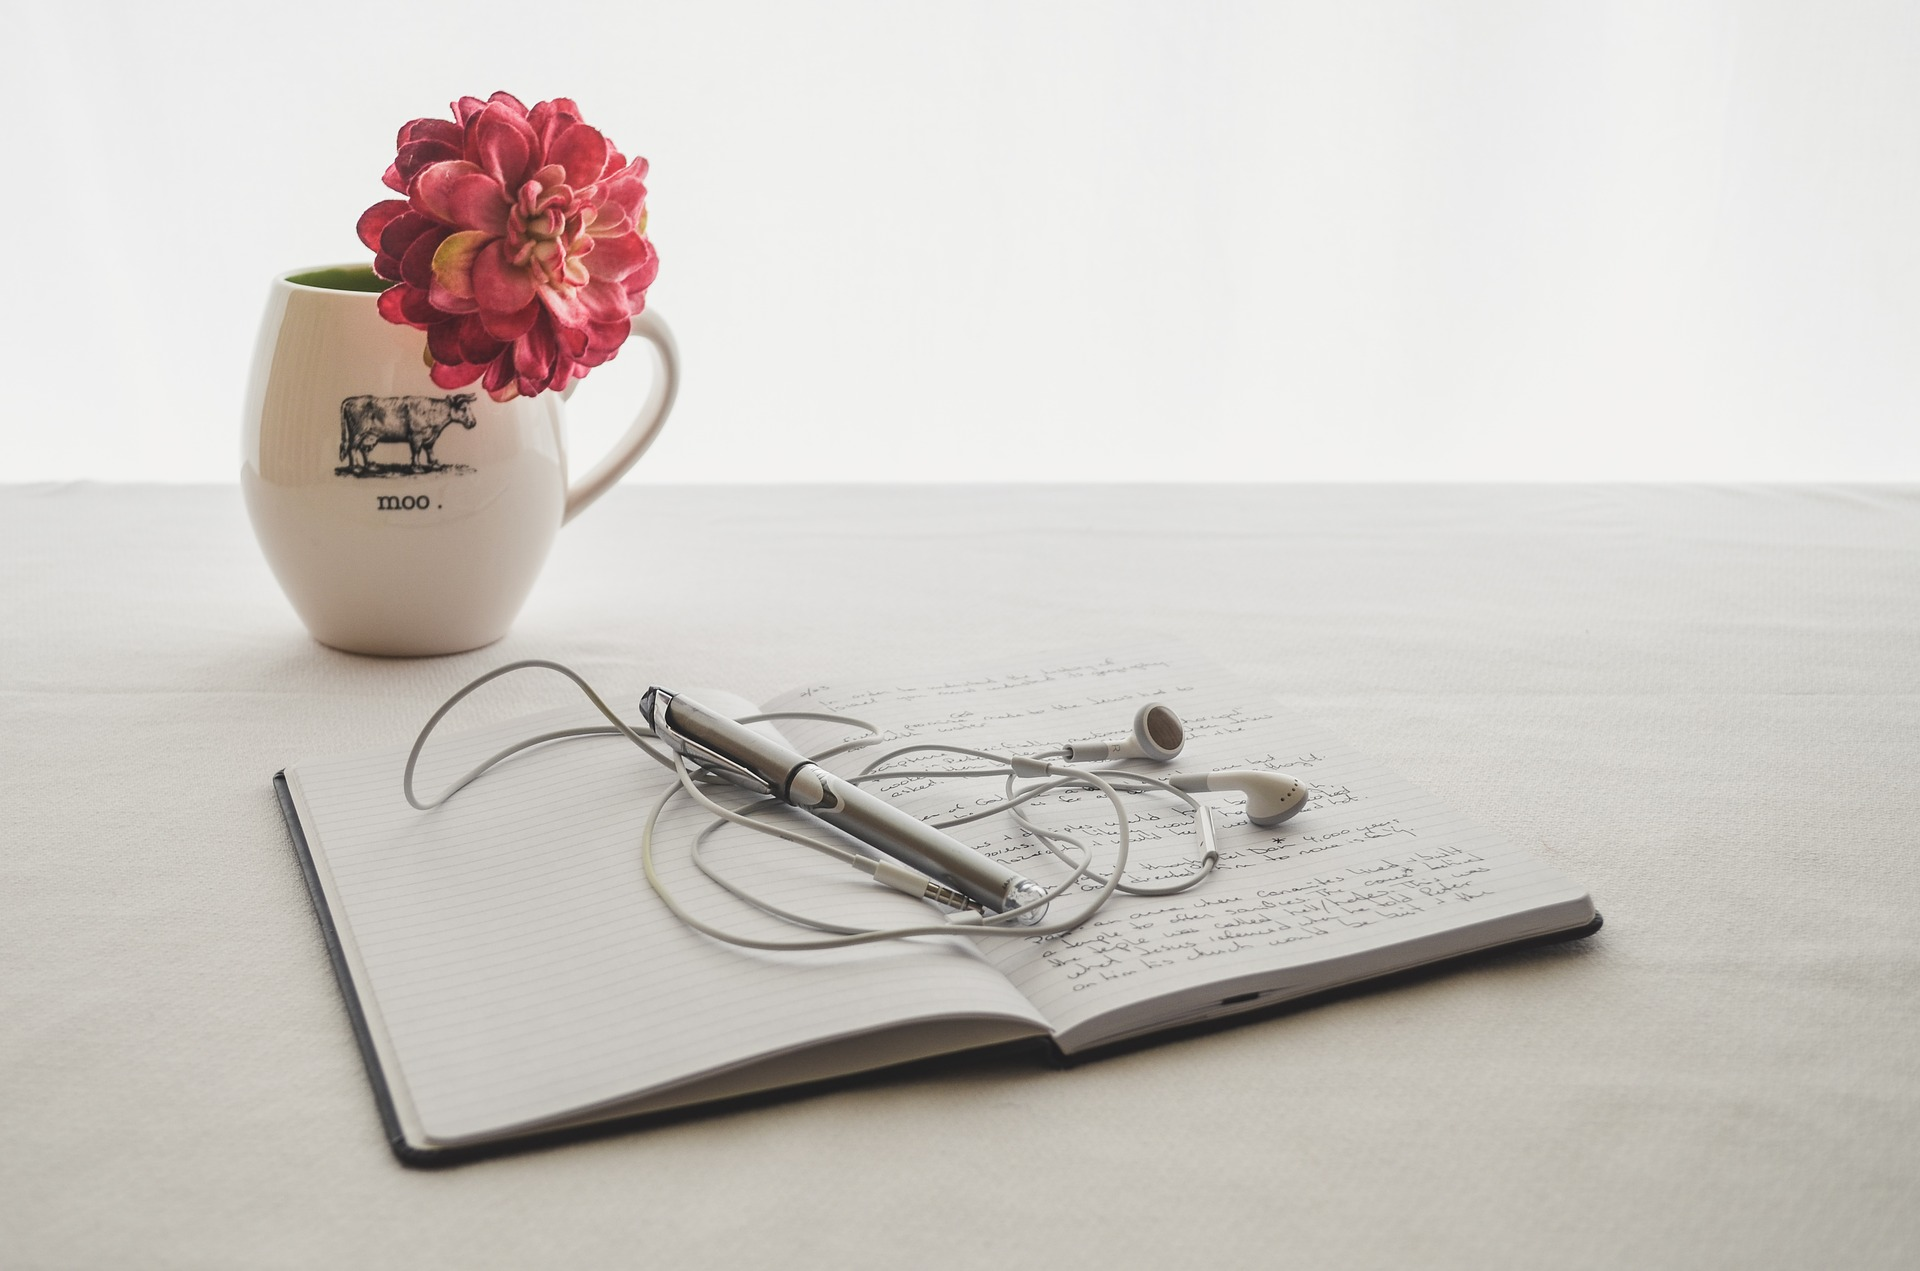 Journal and earbuds